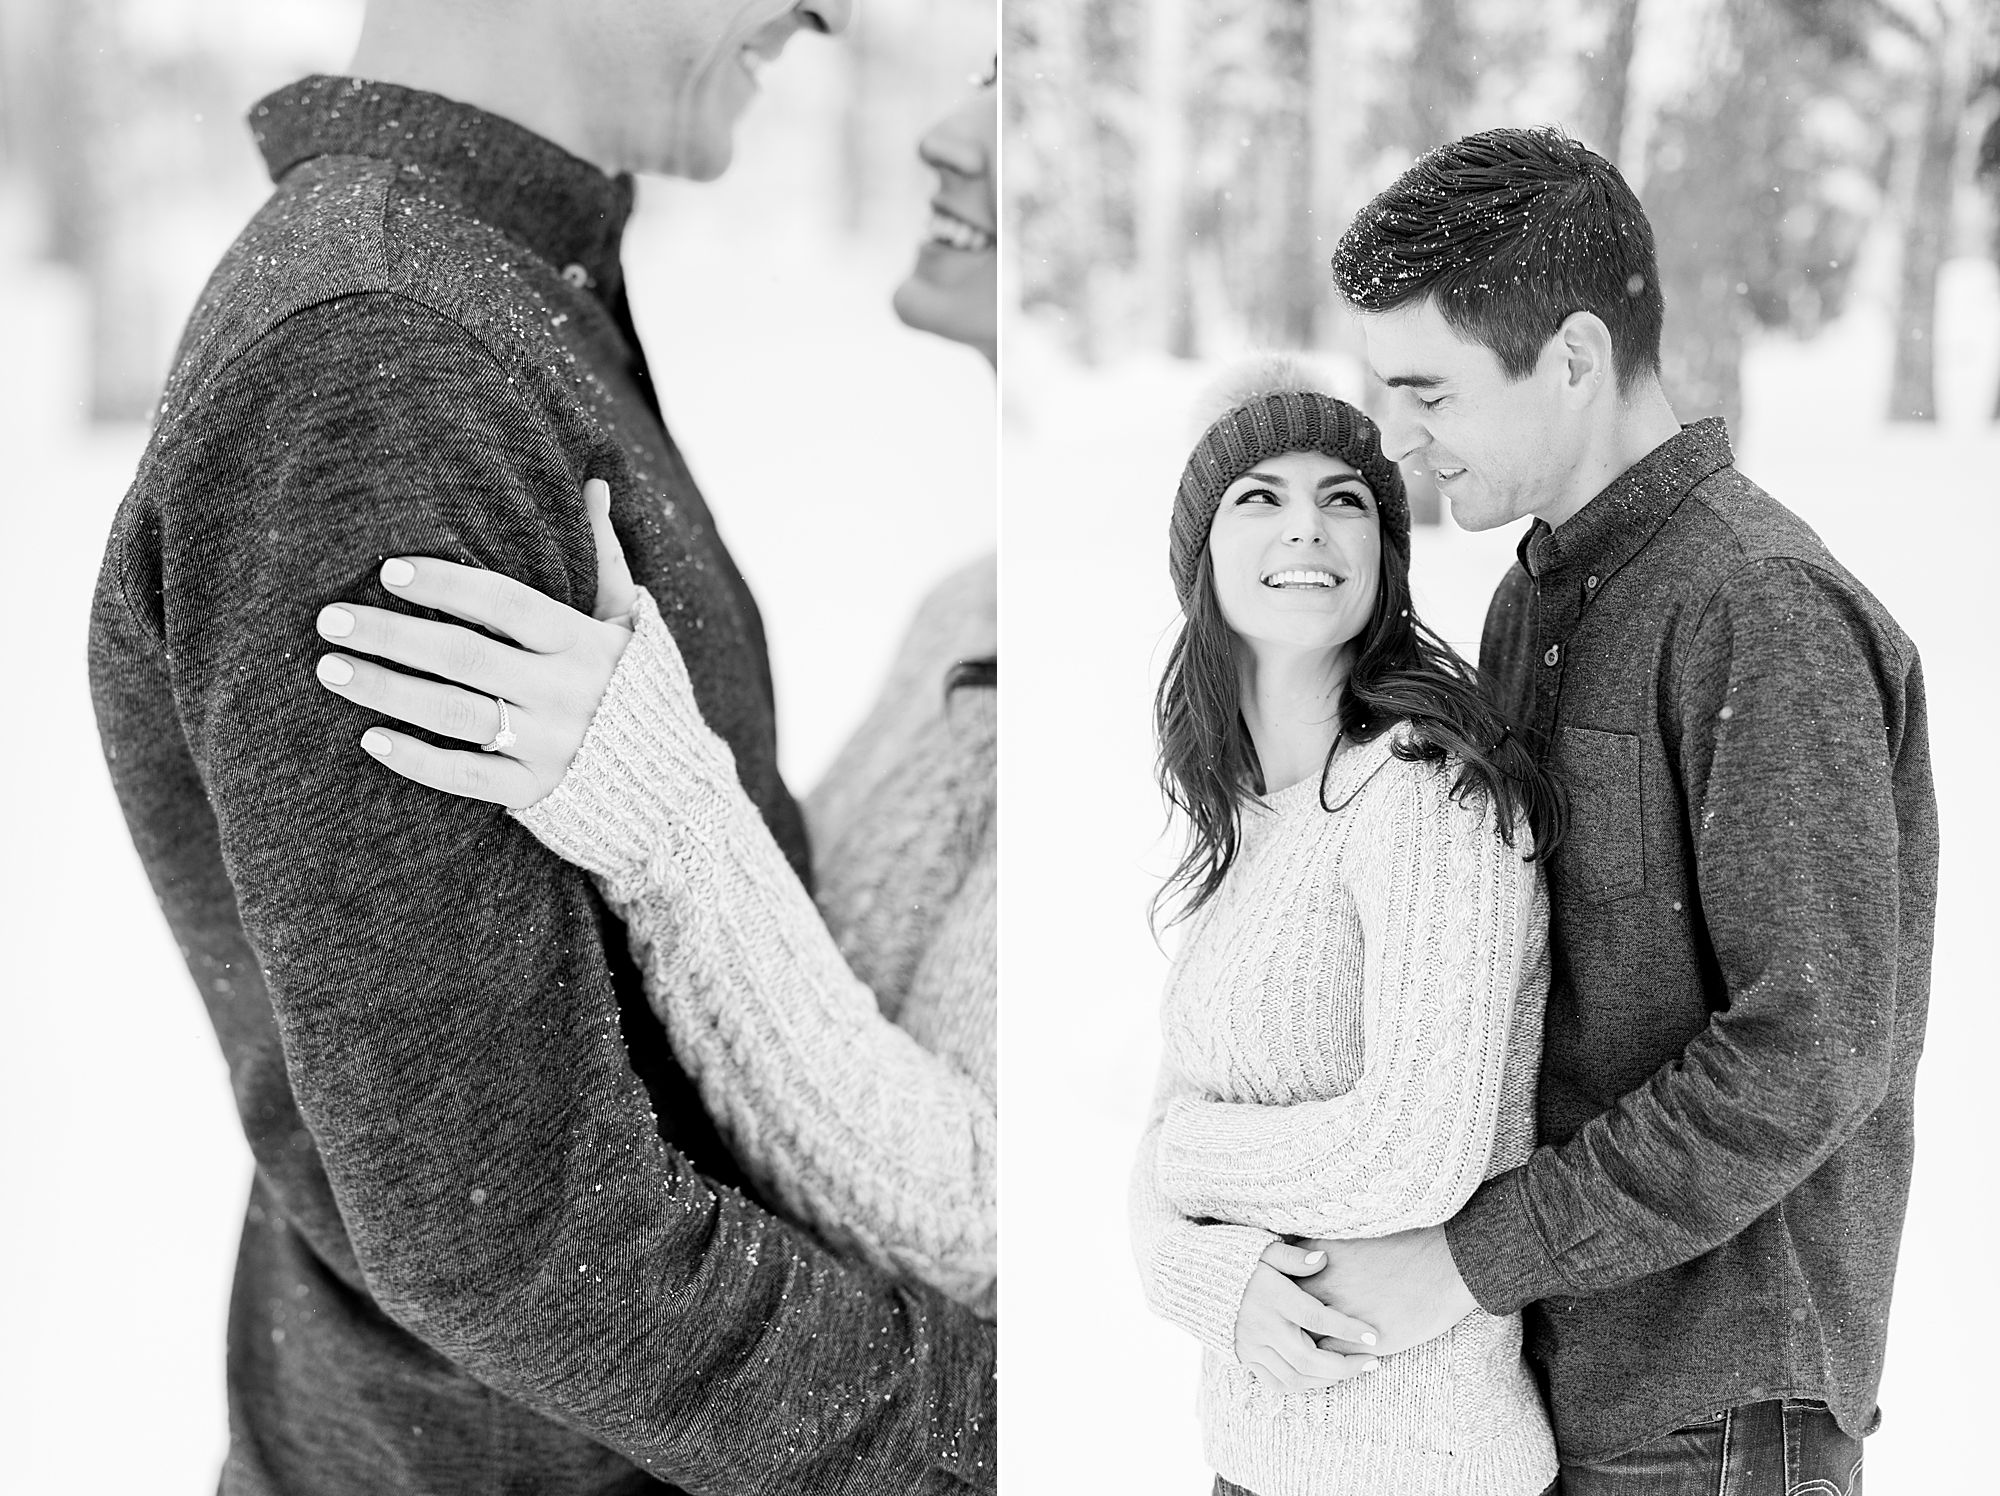 Snowy Tahoe Engagement Session - Alex and Kevin - Ashley Baumgartner - Tahoe Engagement Session - Tahoe Wedding Photographer - Tahoe Engagement Photos - Snow Engagement Photos_0007.jpg